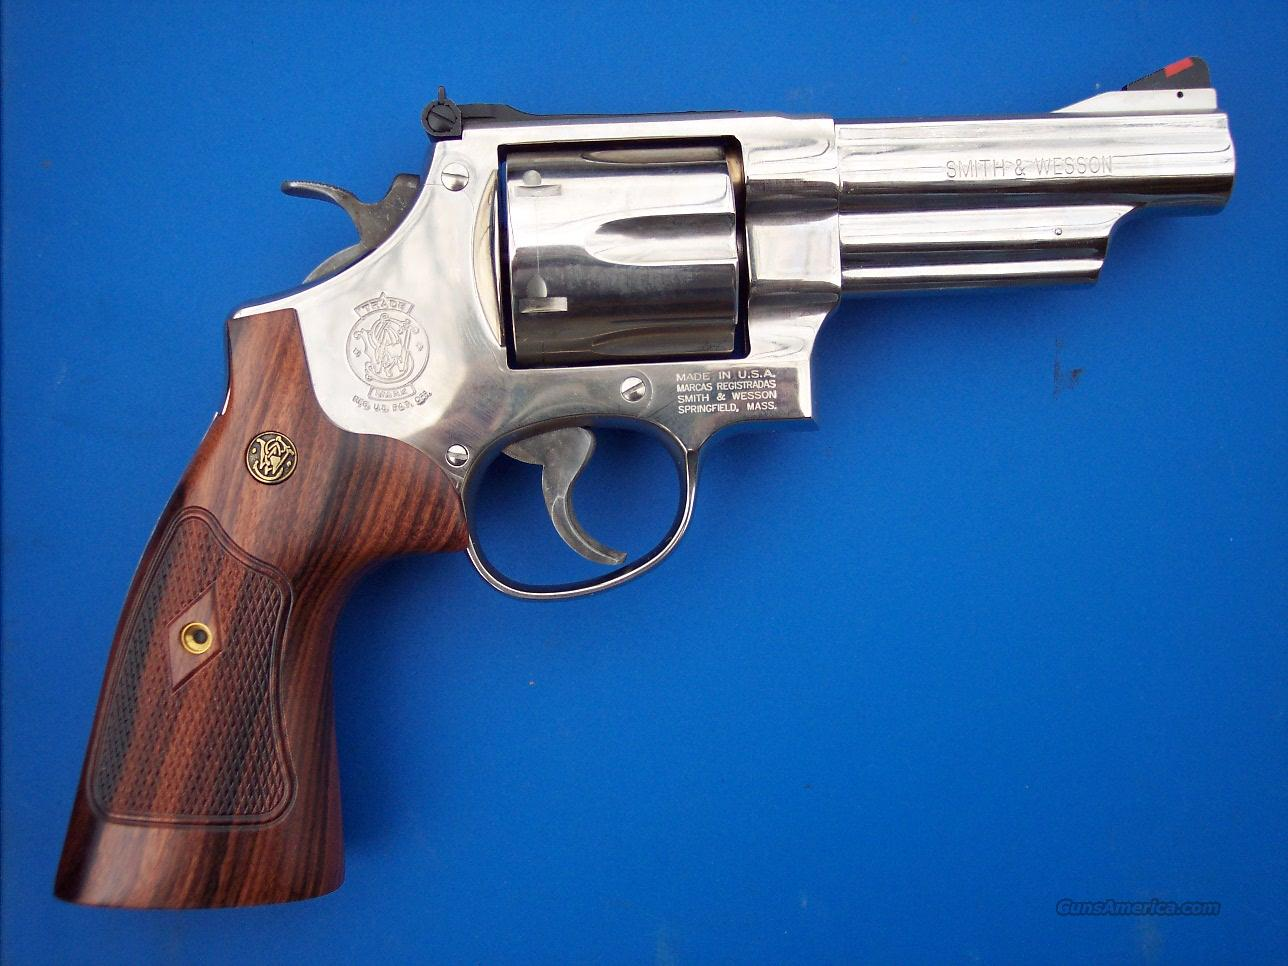 Smith & Wesson 29 Classic Nickel 44 Mag  Guns > Pistols > Smith & Wesson Revolvers > Full Frame Revolver